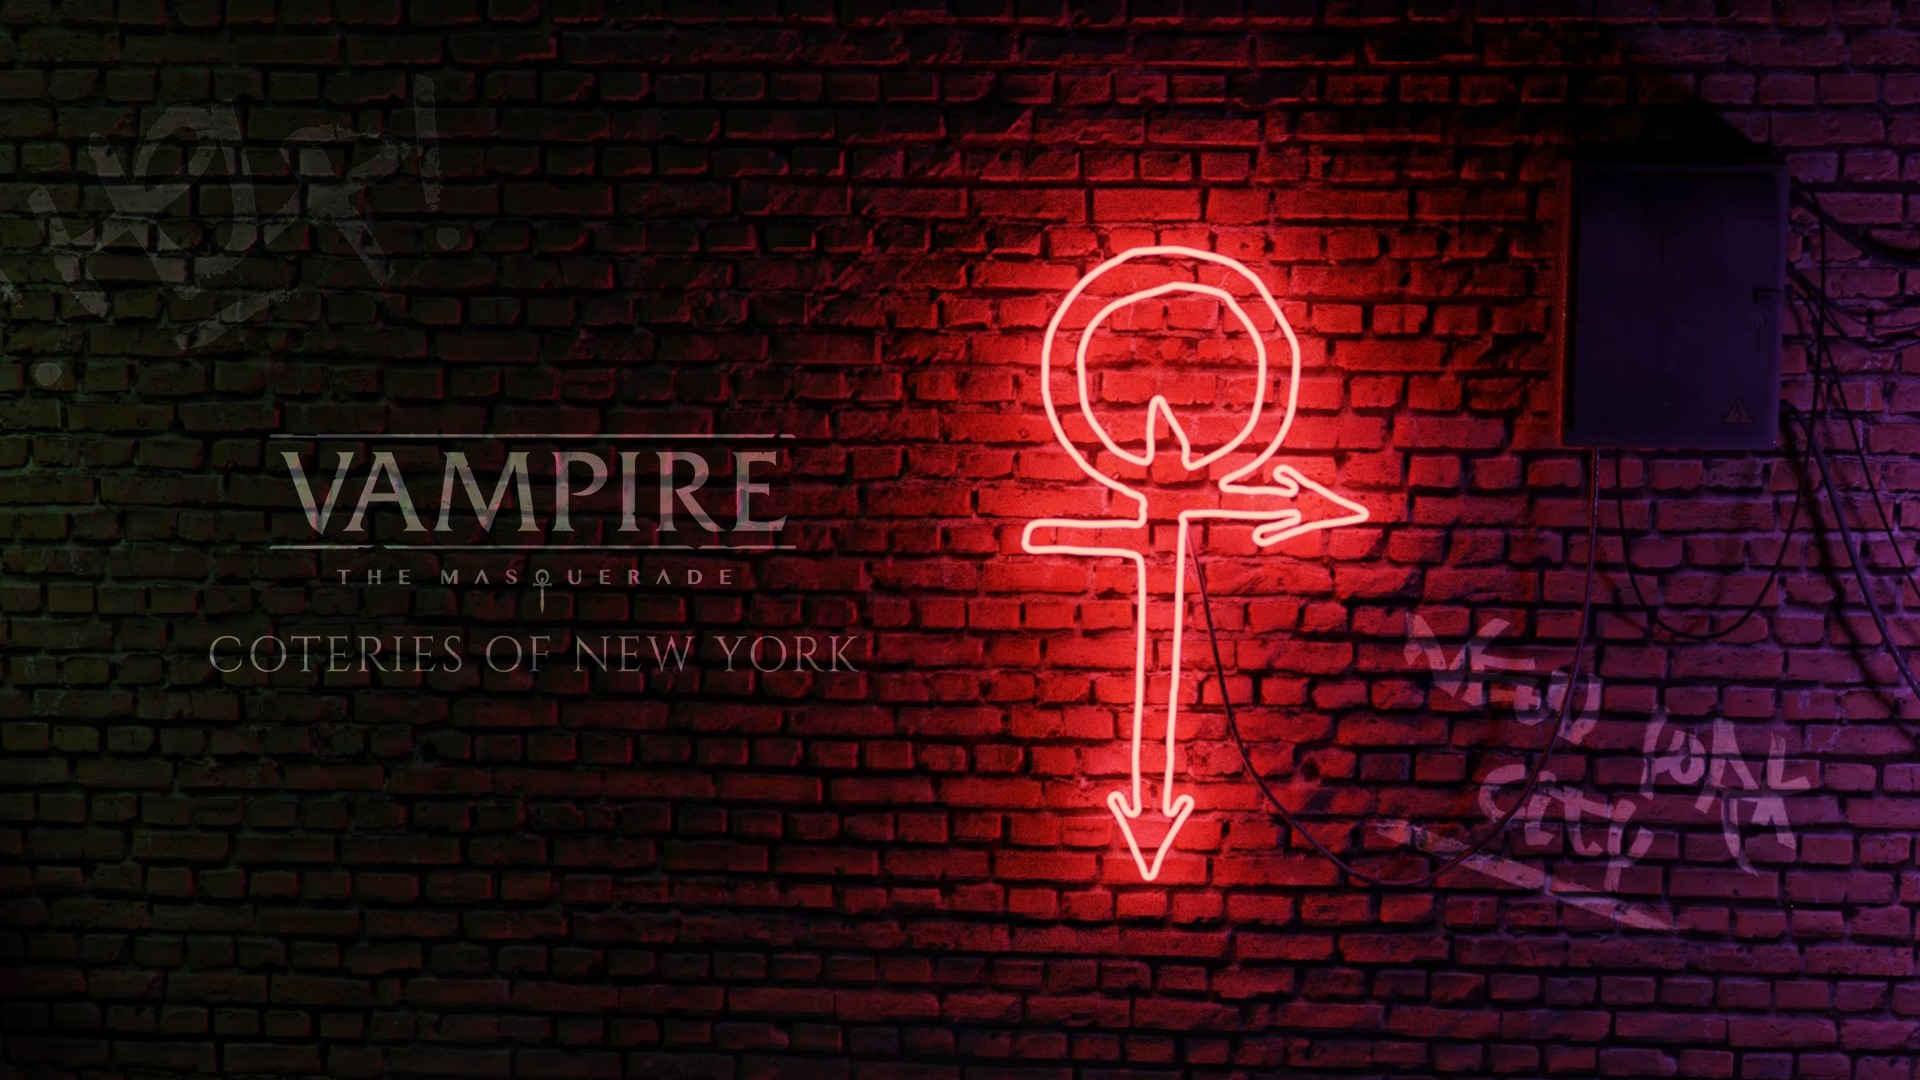 Vampire: The Masquerade - Coteries of New York - Anarch Wallpaper